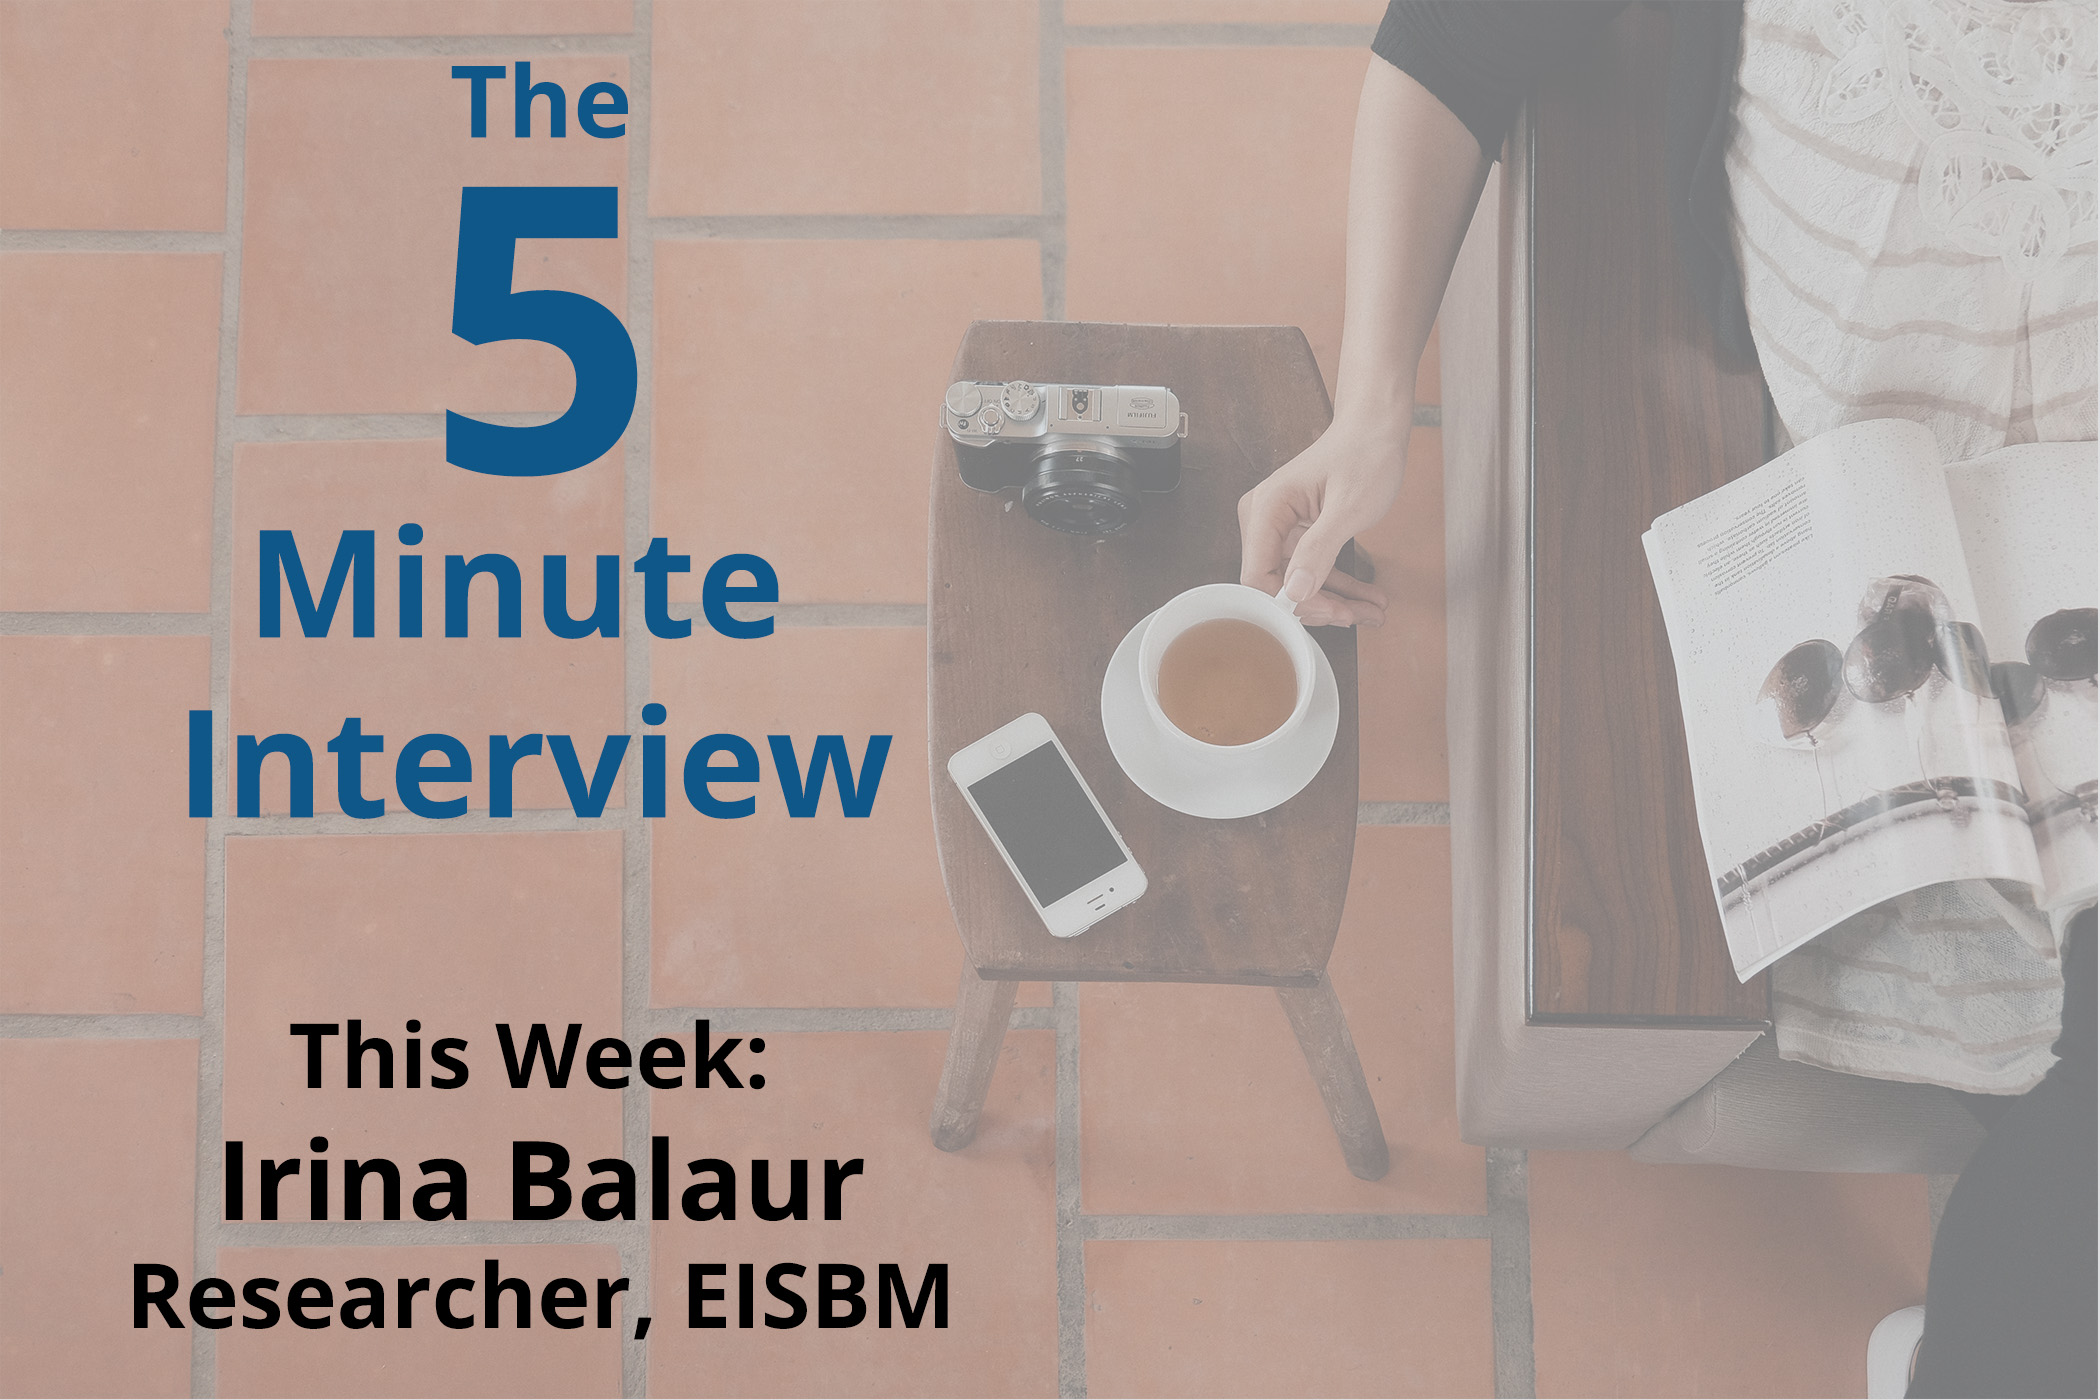 Catch this week's 5-Minute Interview with Irina Balaur, Researcher at the EISBM